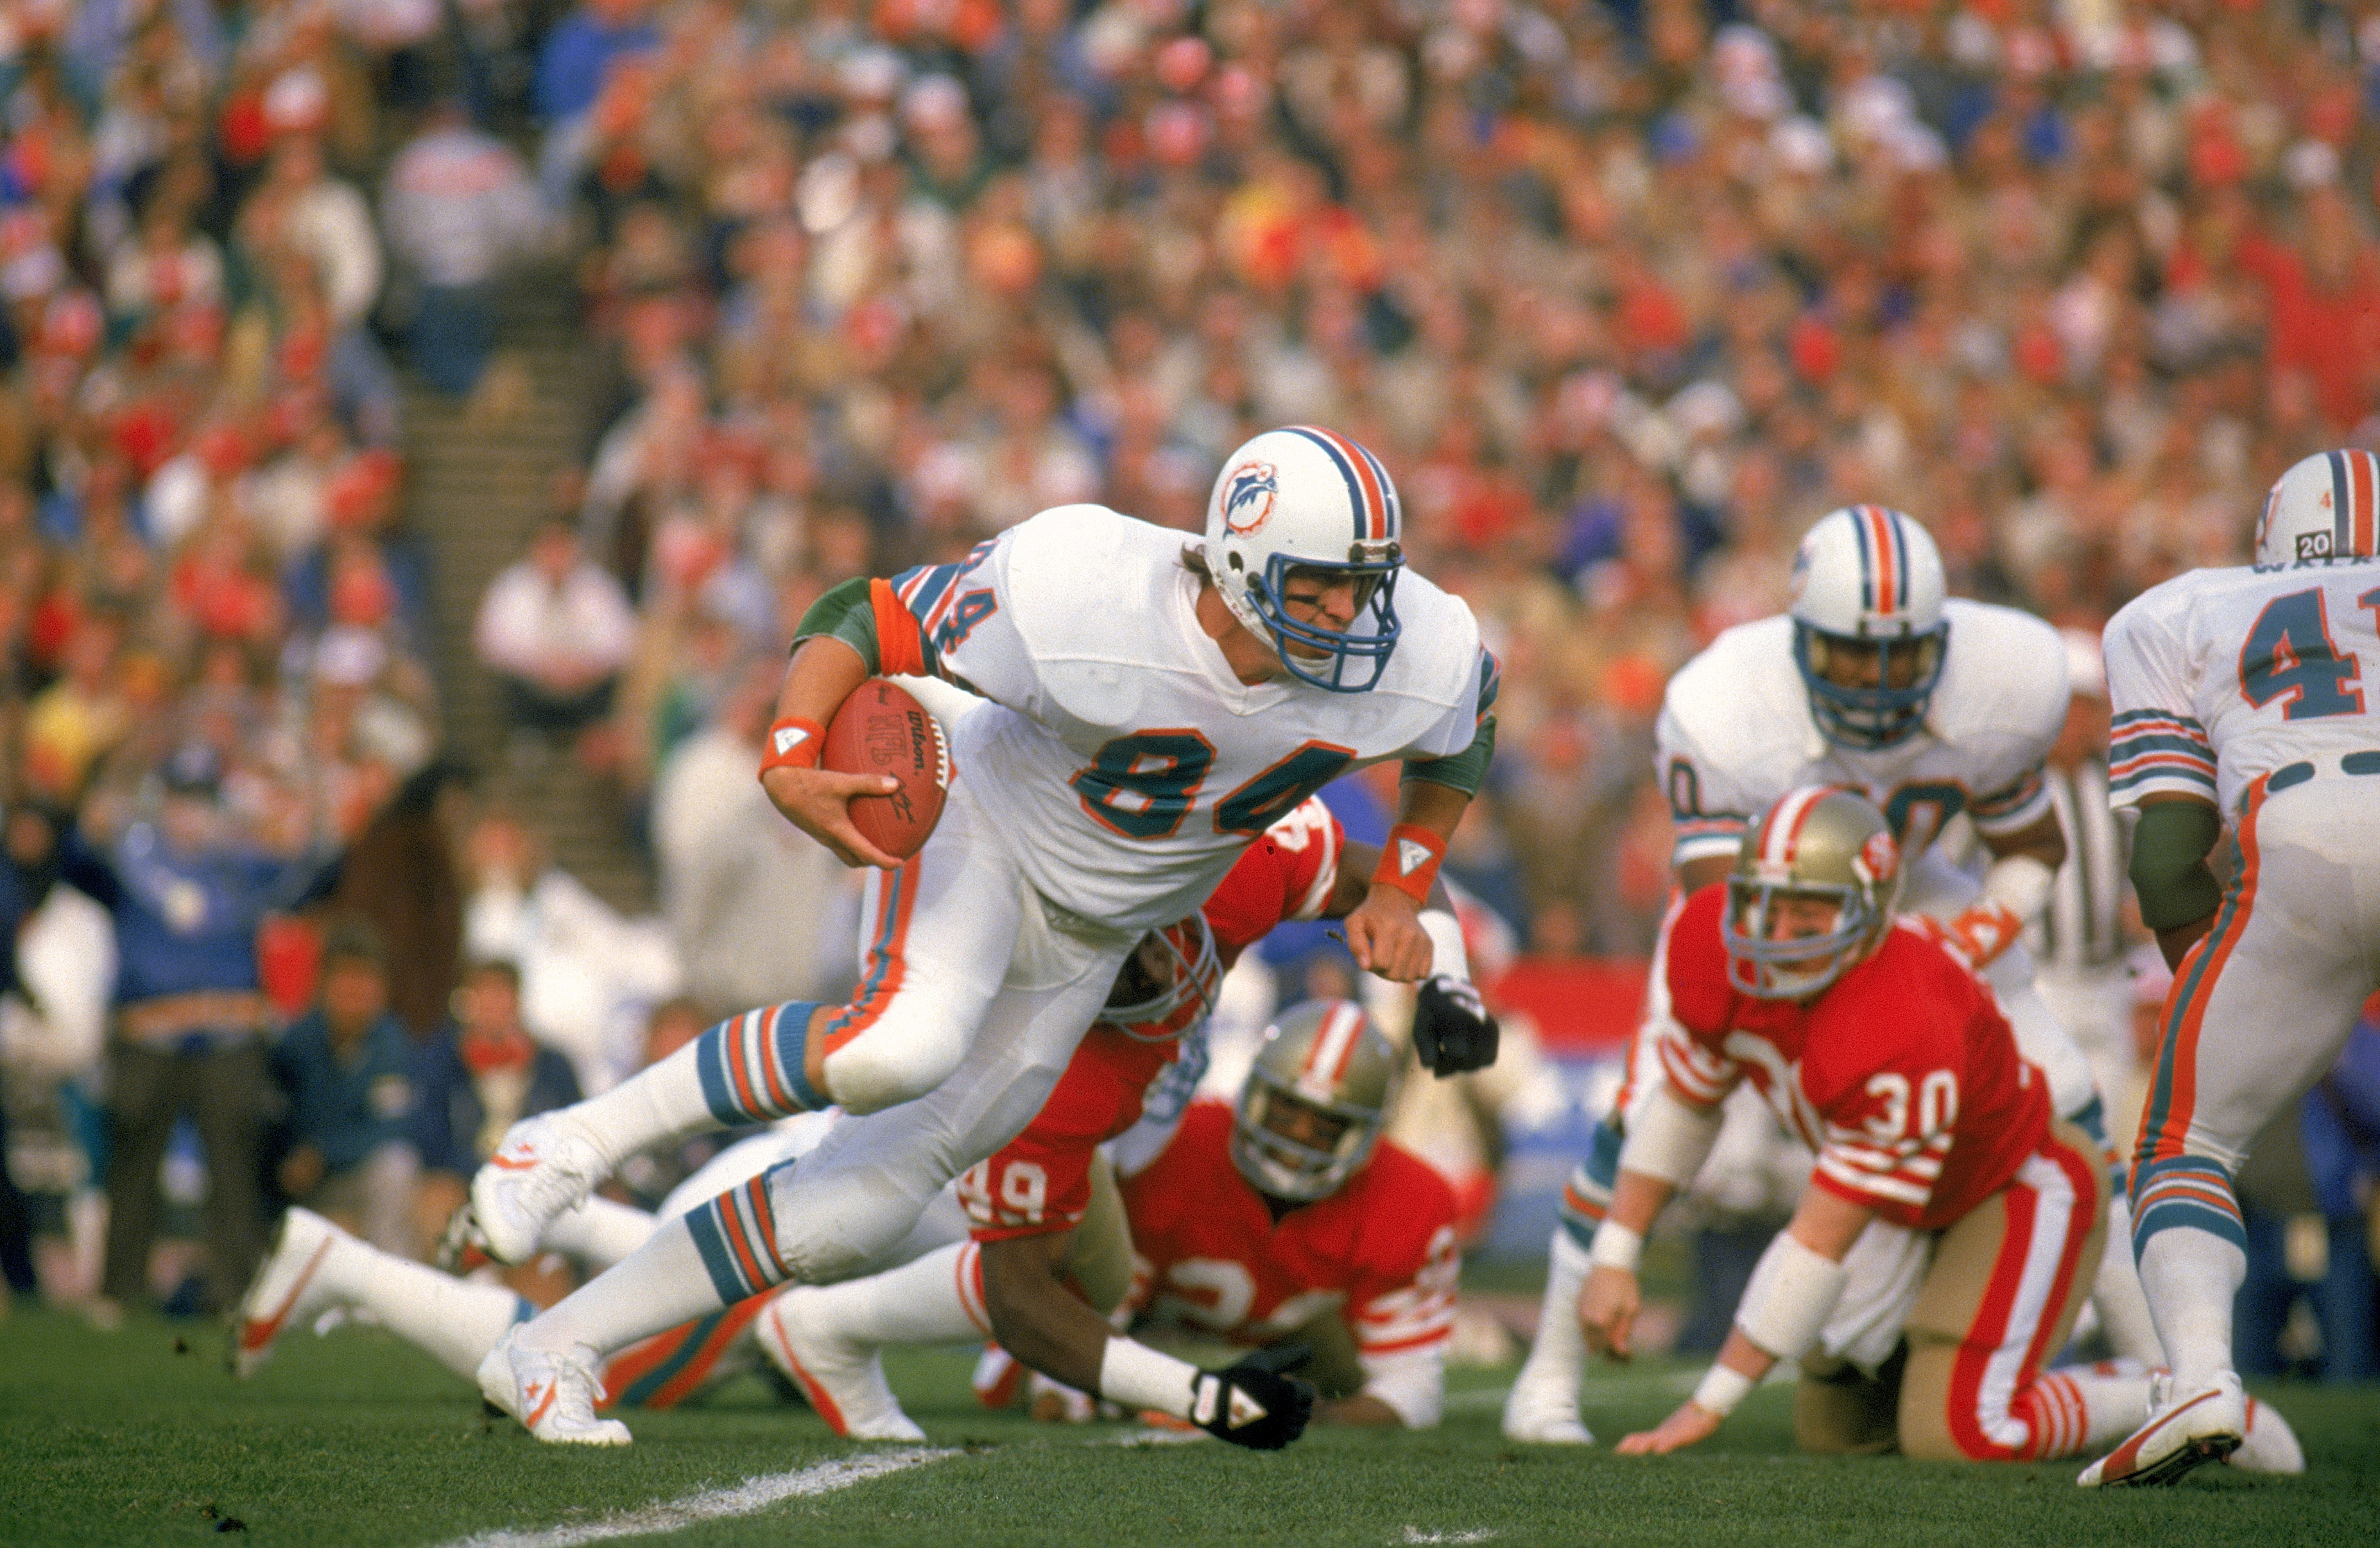 STANFORD, CA - JANUARY 20:  Bruce Hardy #84 of the Miami Dolphins runs with the ball during Super Bowl XIX against the San Francisco 49ers at Stanford Stadium on January 20, 1985 in Stanford, California.  The 49ers defeated the Dolphins 38-16.  (Photo by